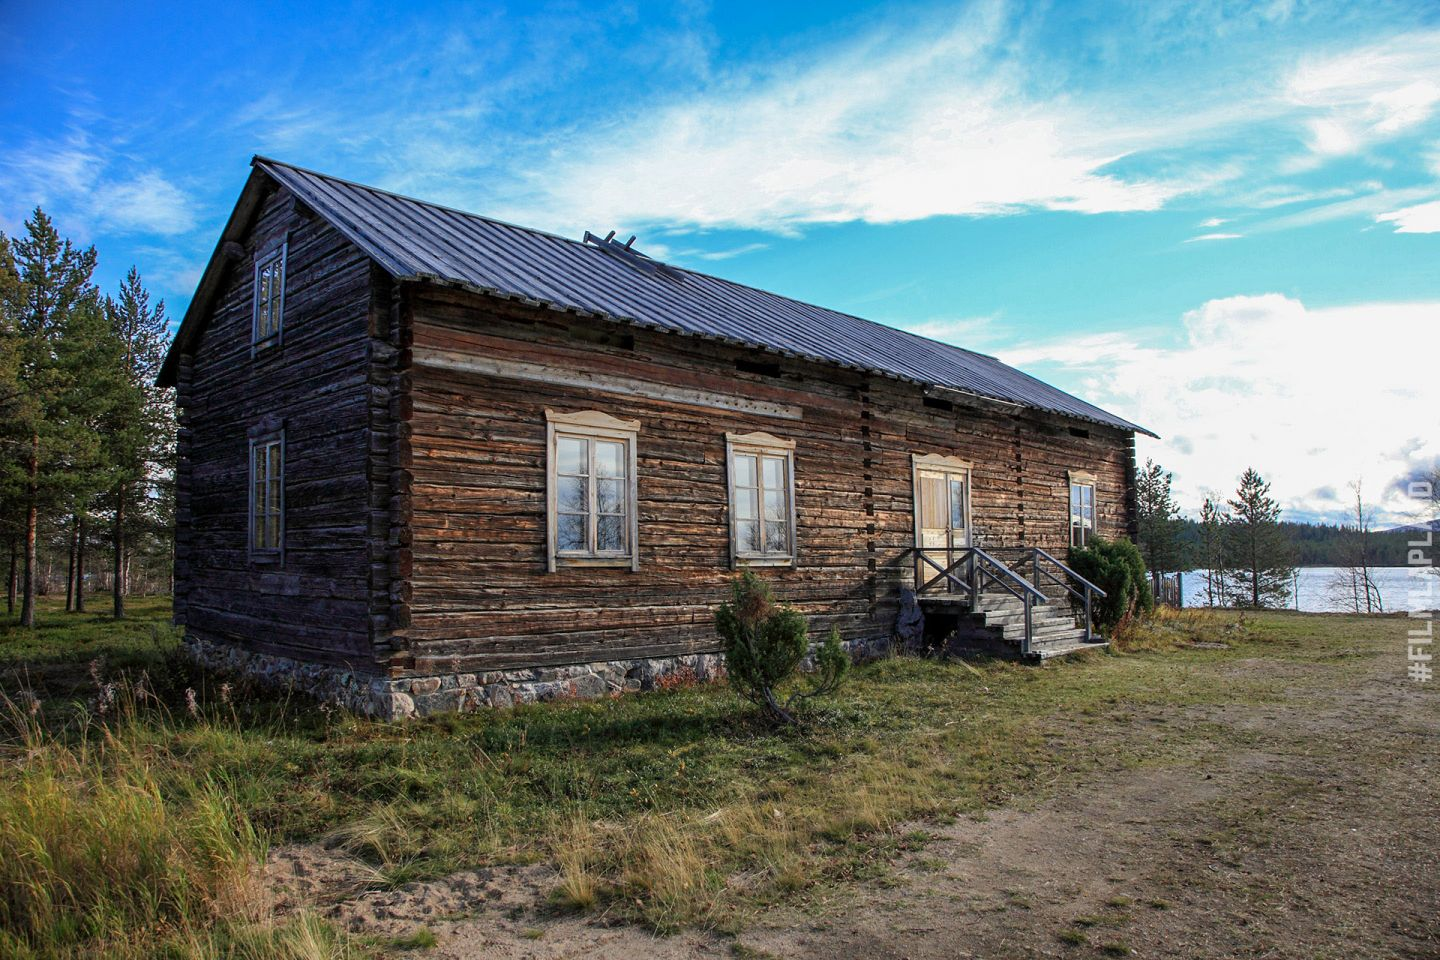 Old wooden house in Enontekiö, Finland